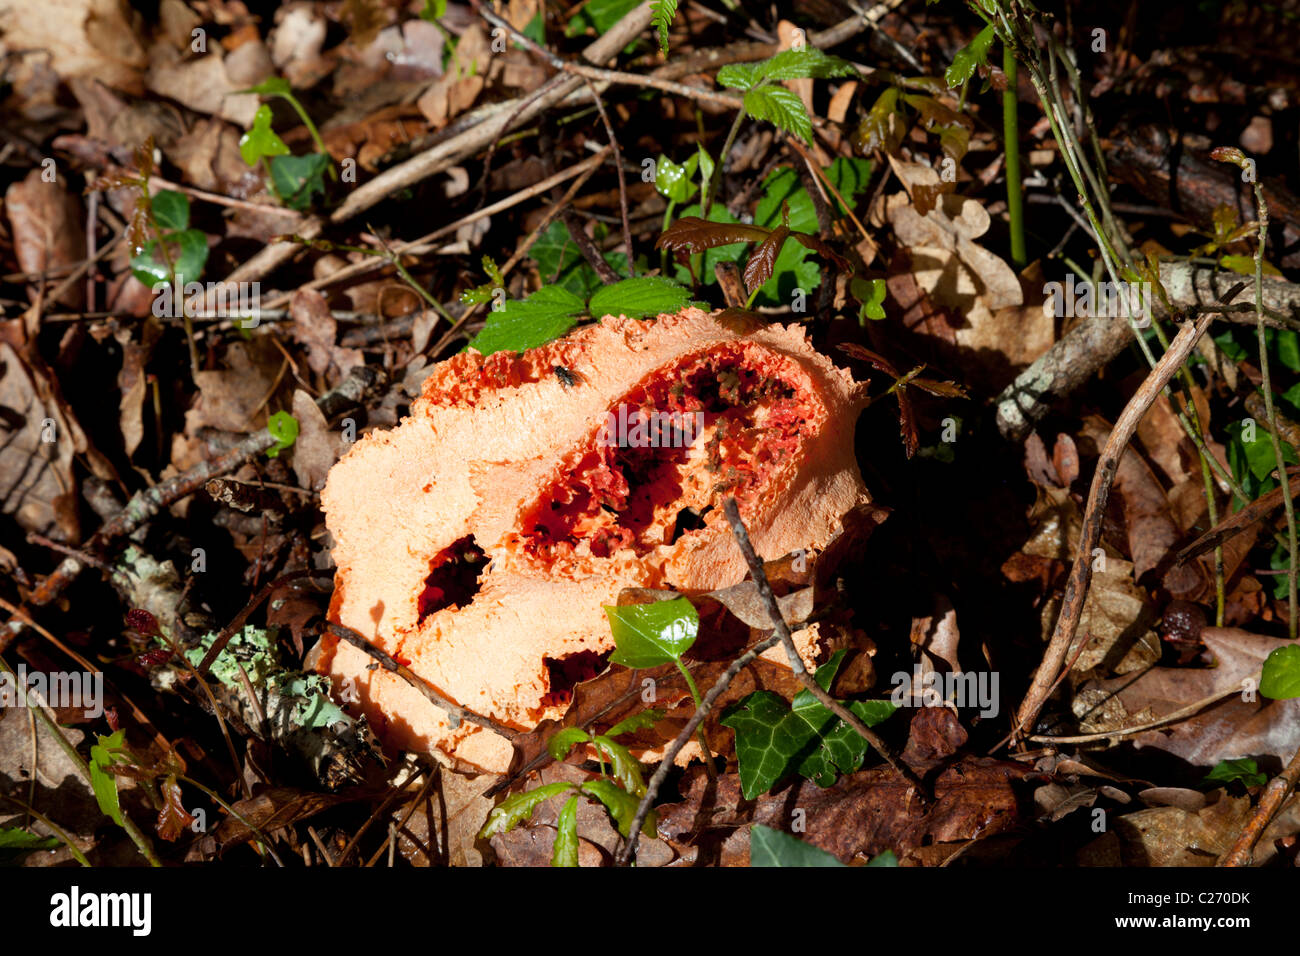 The weird red cage fungus showing its hollow lattice structure. Le champignon Clathre rouge montrant sa structure - Stock Image